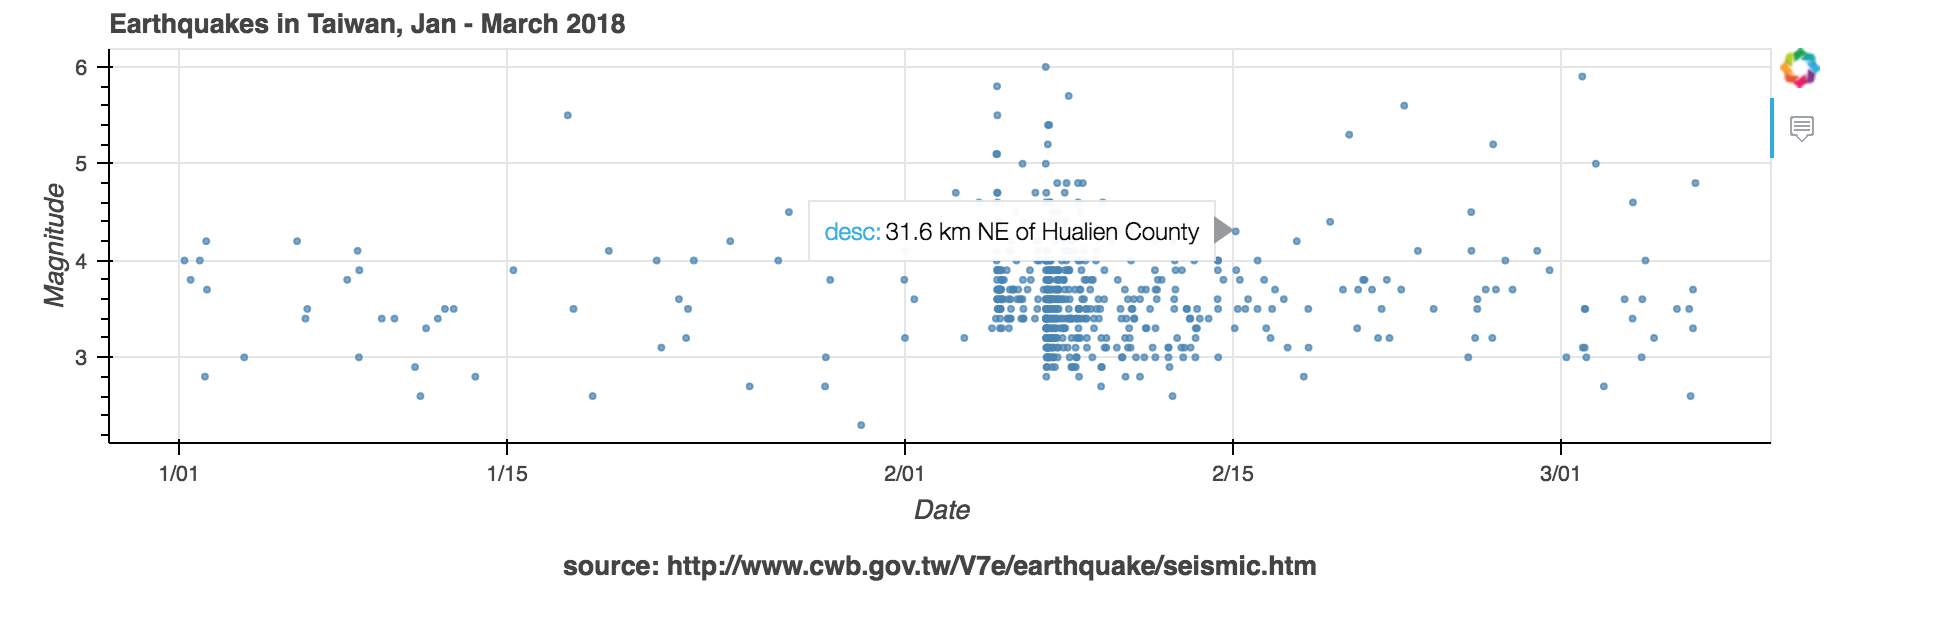 Exploring Earthquake Clusters with Python